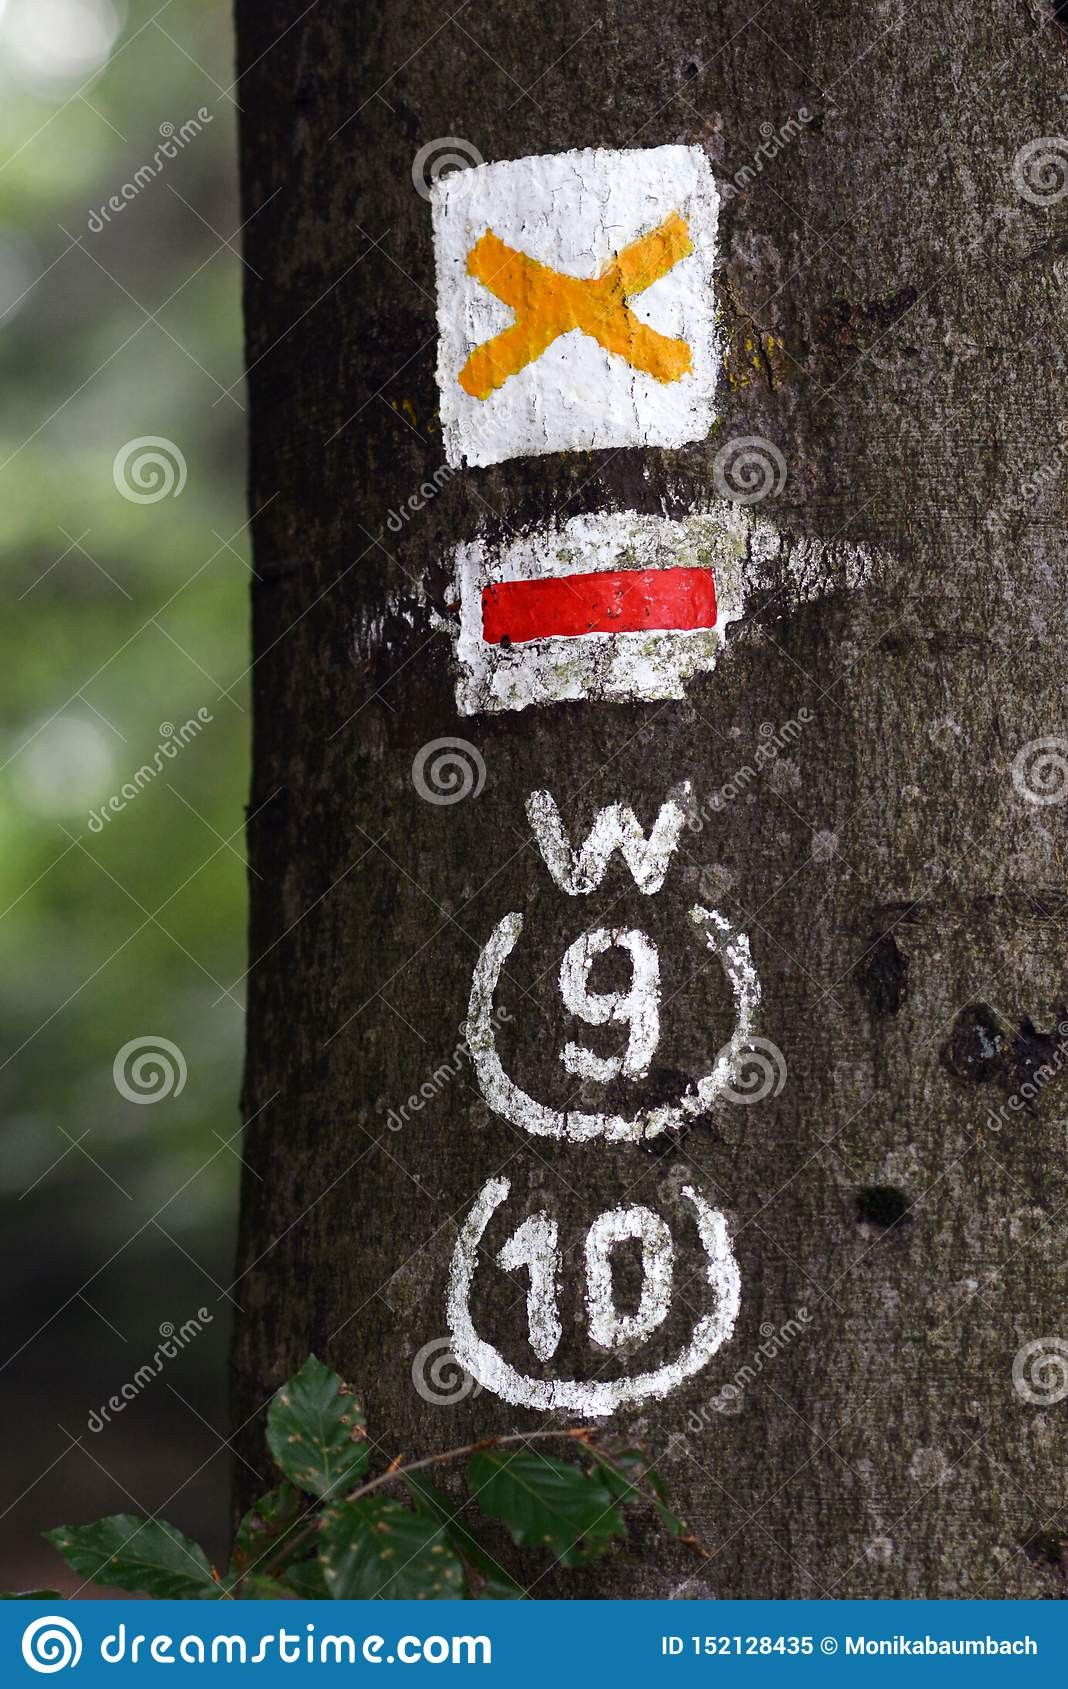 Close up of hiking trail blazing markings on tree in forest